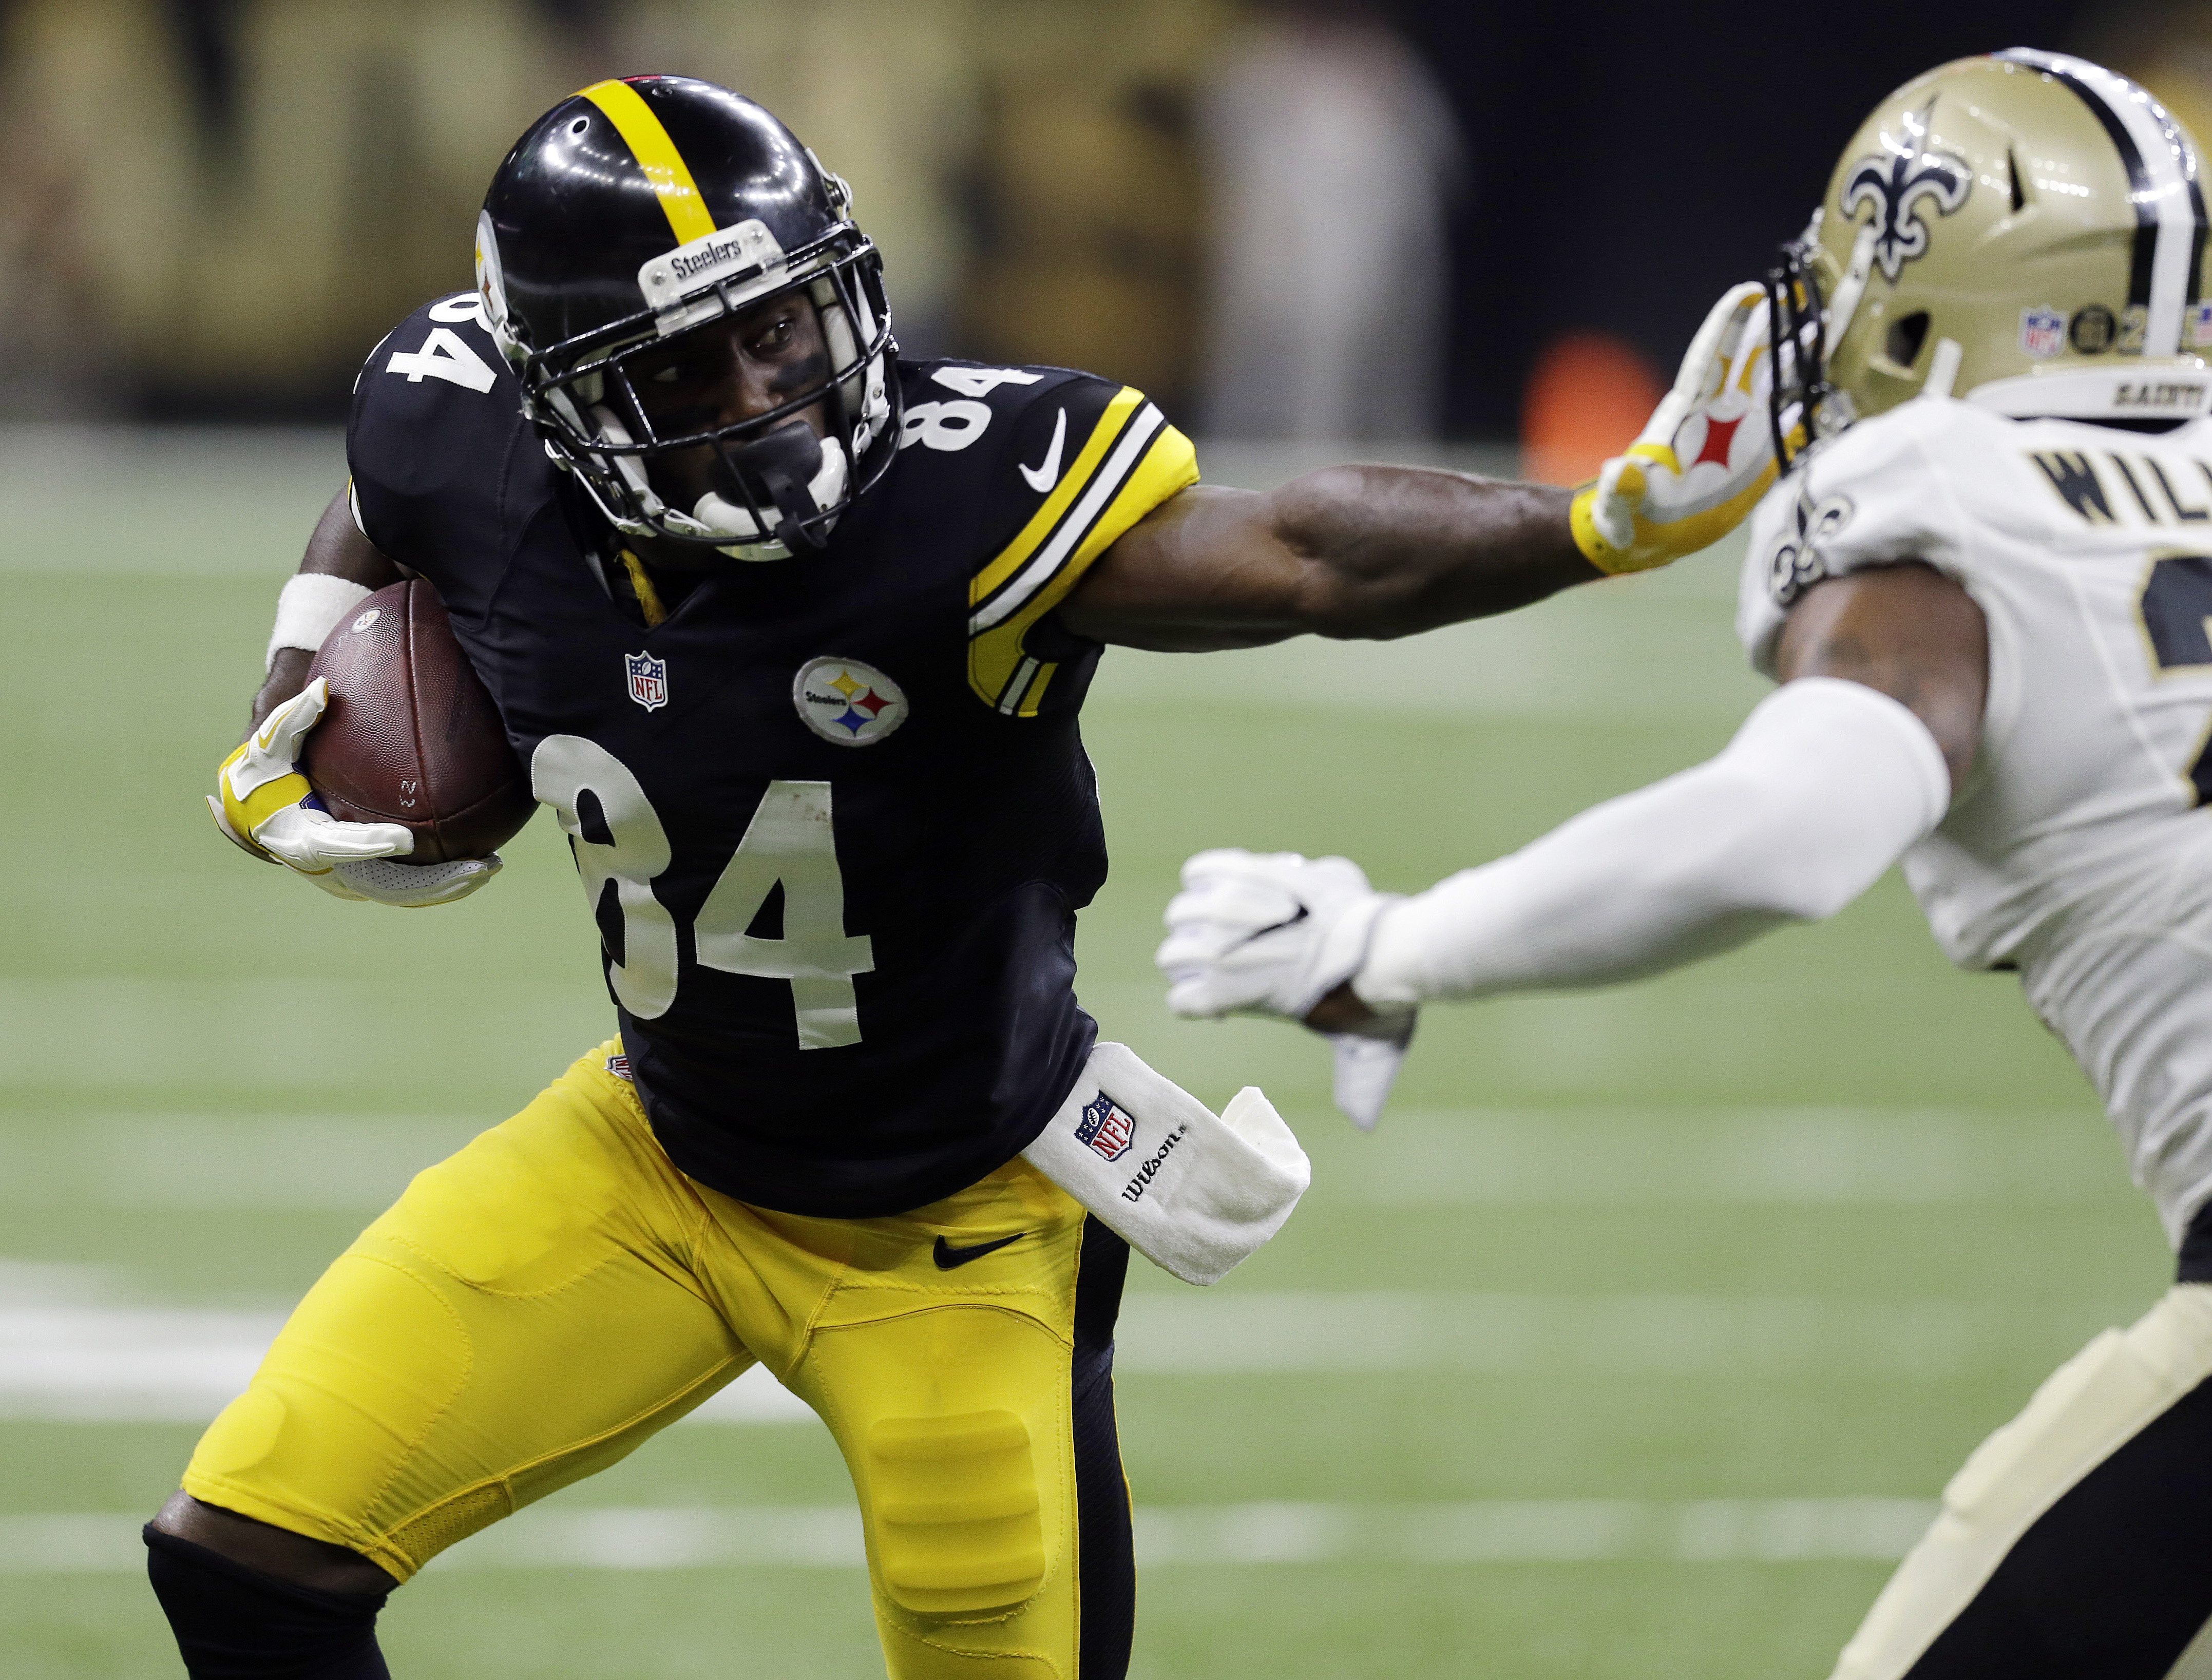 FILE - In this Aug. 26, 2016, file photo, Pittsburgh Steelers wide receiver Antonio Brown (84) runs against New Orleans Saints cornerback P.J. Williams (25) in the first half of an NFL preseason football game in New Orleans.  A person familiar with the de